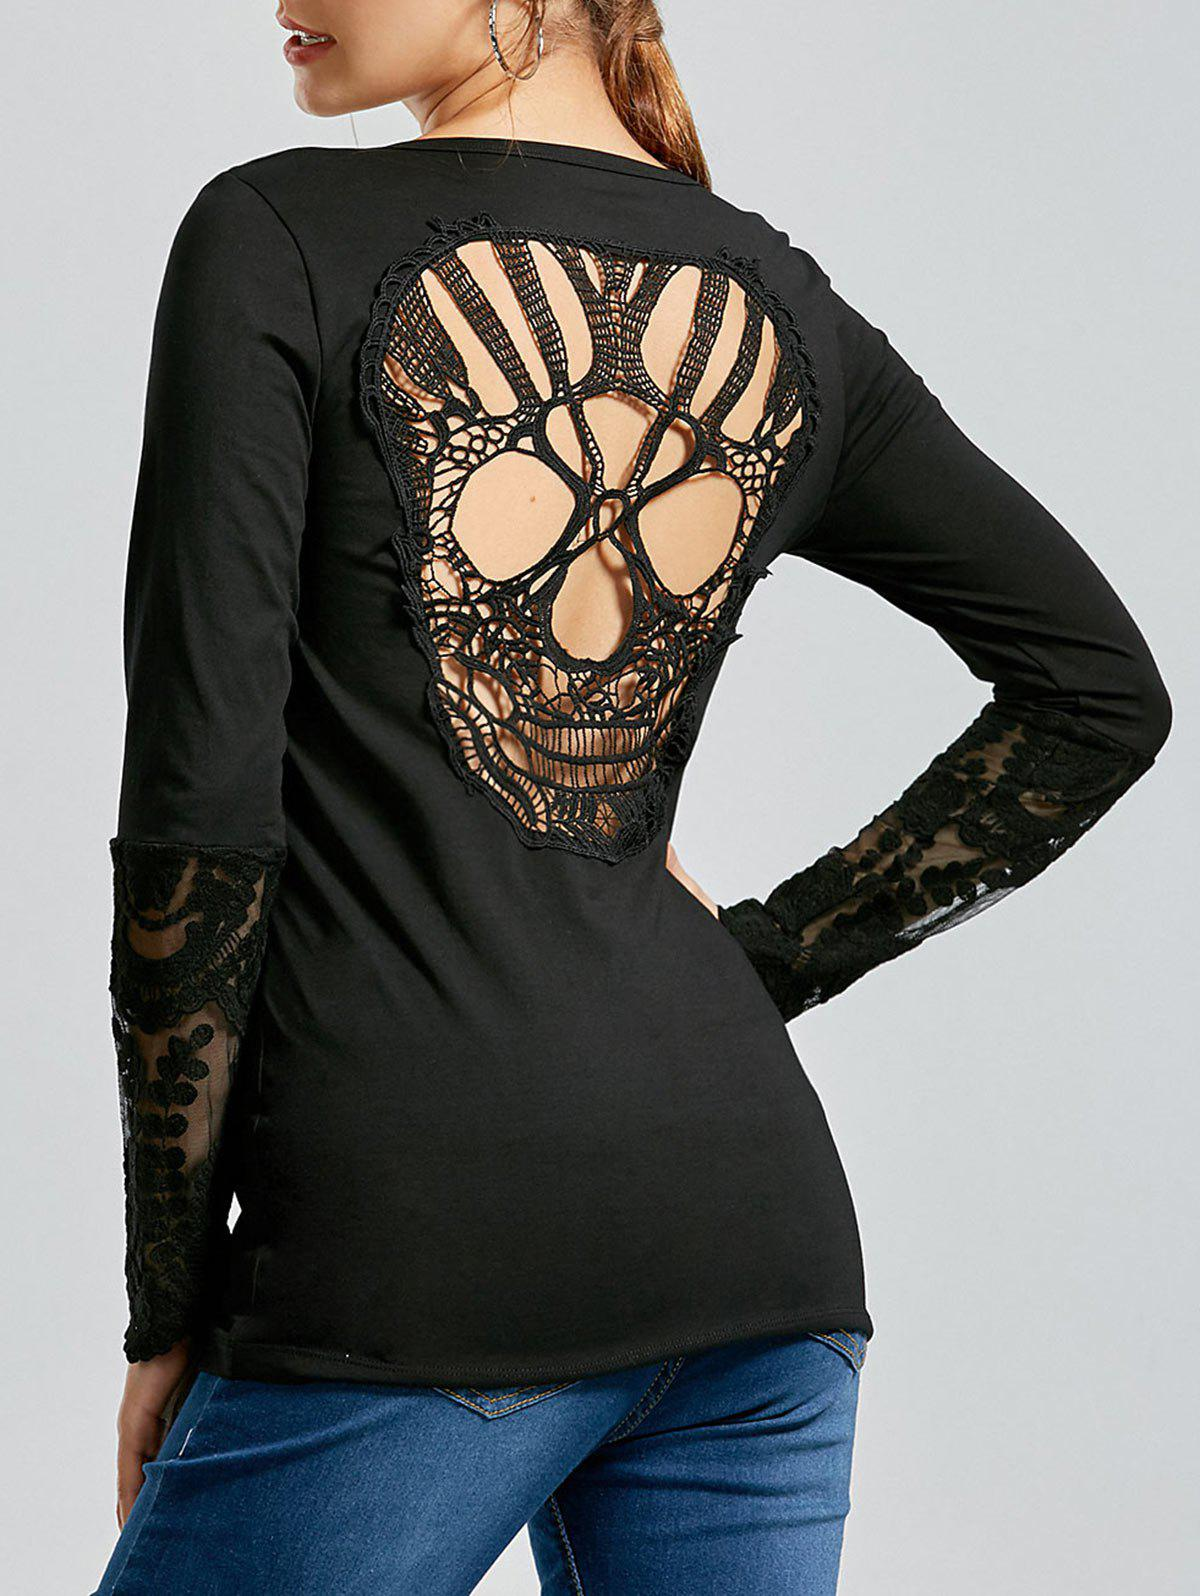 Back Skulls Lace Panel Long Sleeve T-shirt 216429502